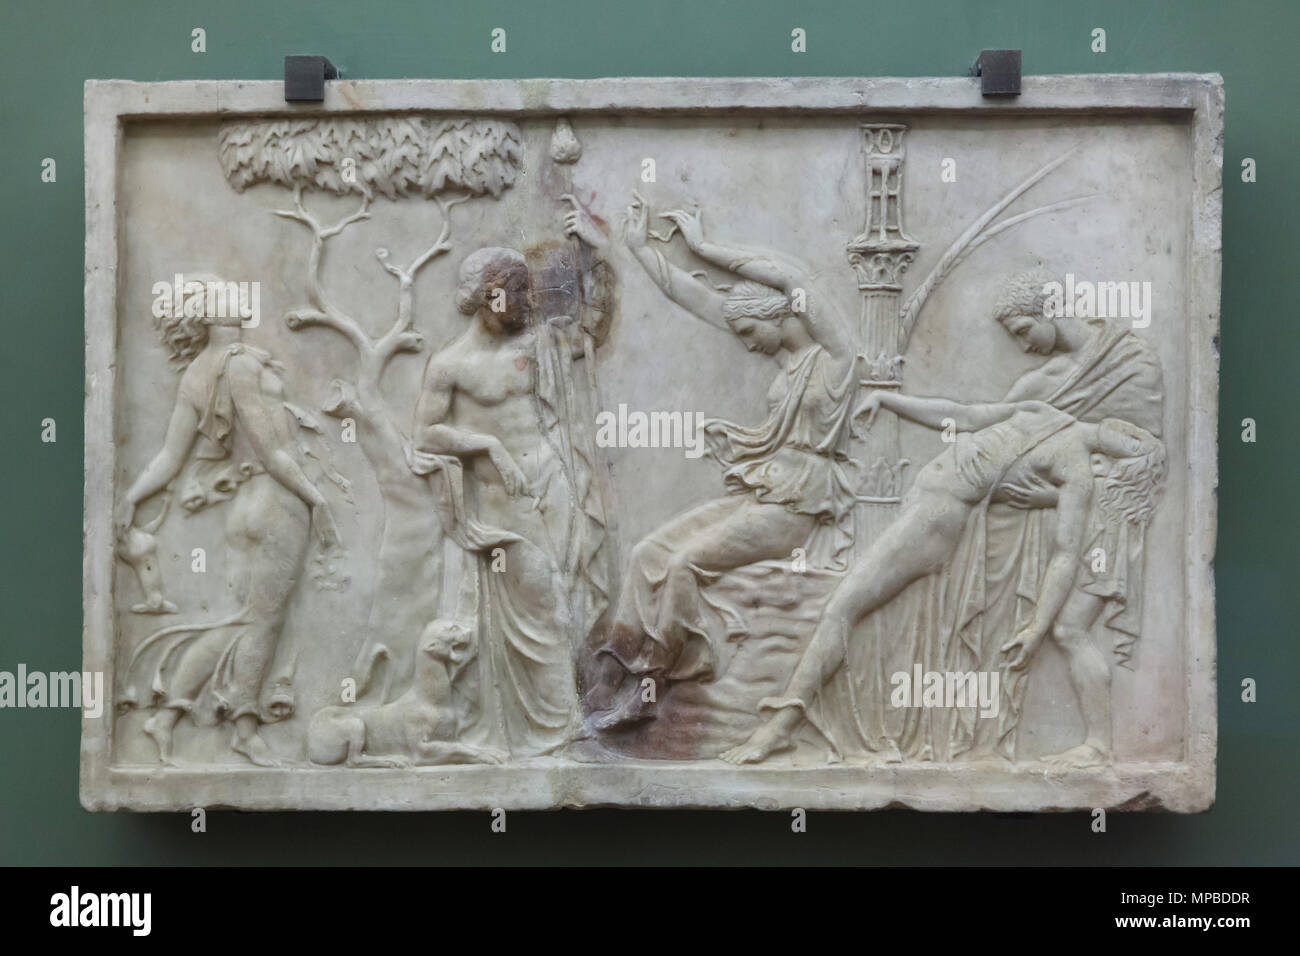 Dionysian scene depicted in the Roman marble relief from the first half of the 1st century AD on display in the Uffizi Gallery (Galleria degli Uffizi) in Florence, Tuscany, Italy. Dionysus is depicted surrounded by drunken Maenads. Stock Photo